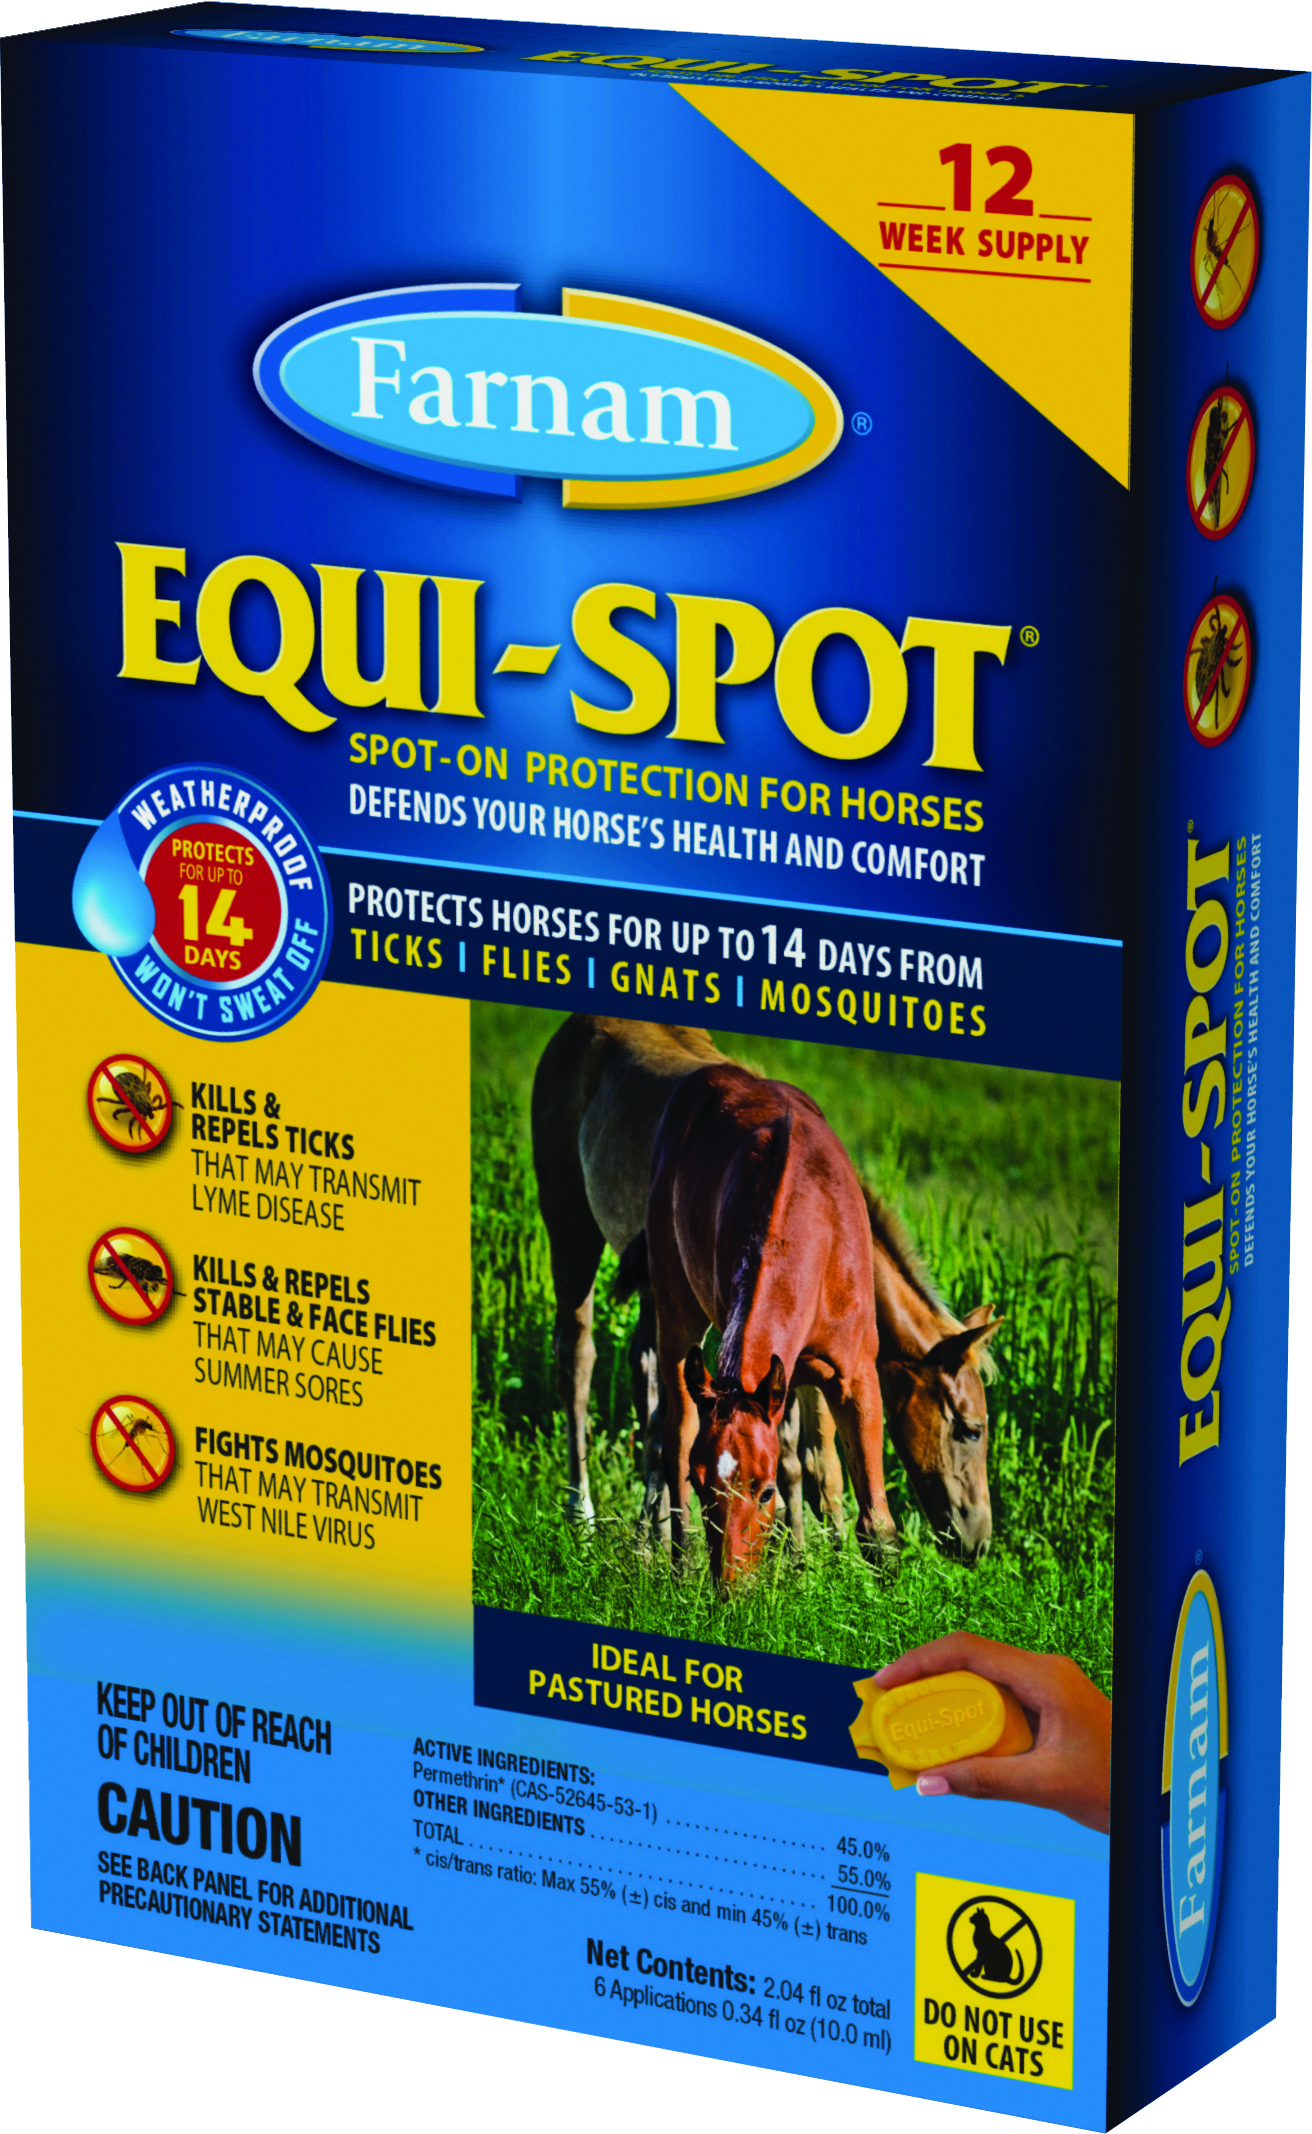 EQUI SPOT SPOT-ON FLY CONTROL FOR HORSES STABLE PK